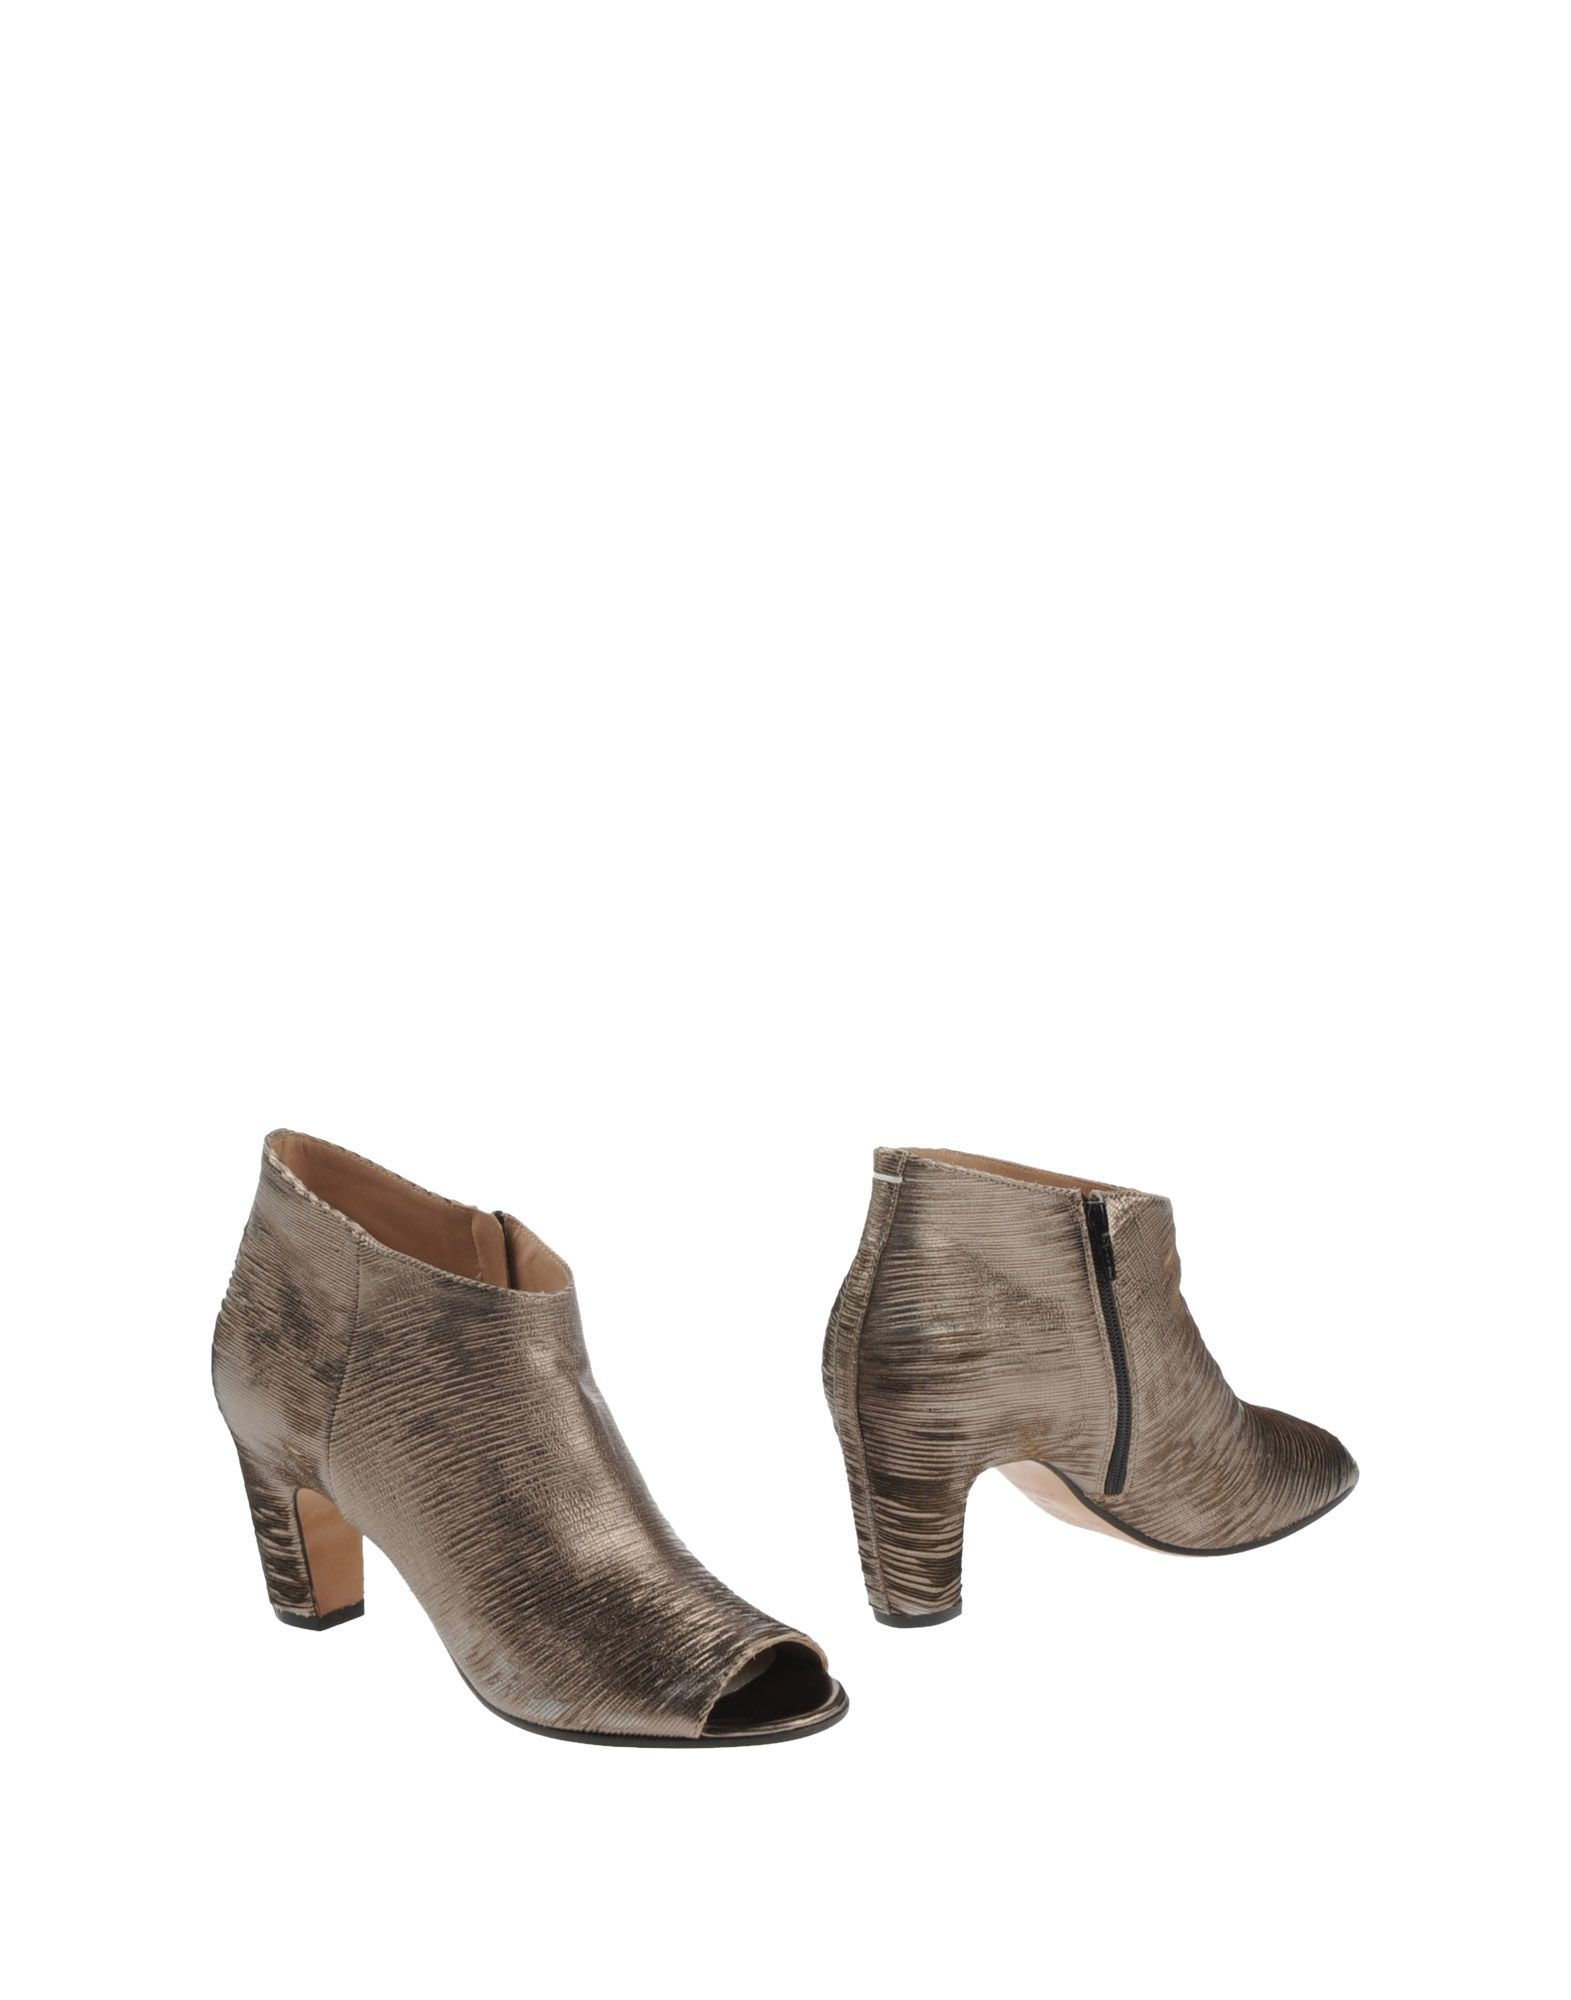 Bottine Maison Margiela Femme - Bottines Maison Margiela sur